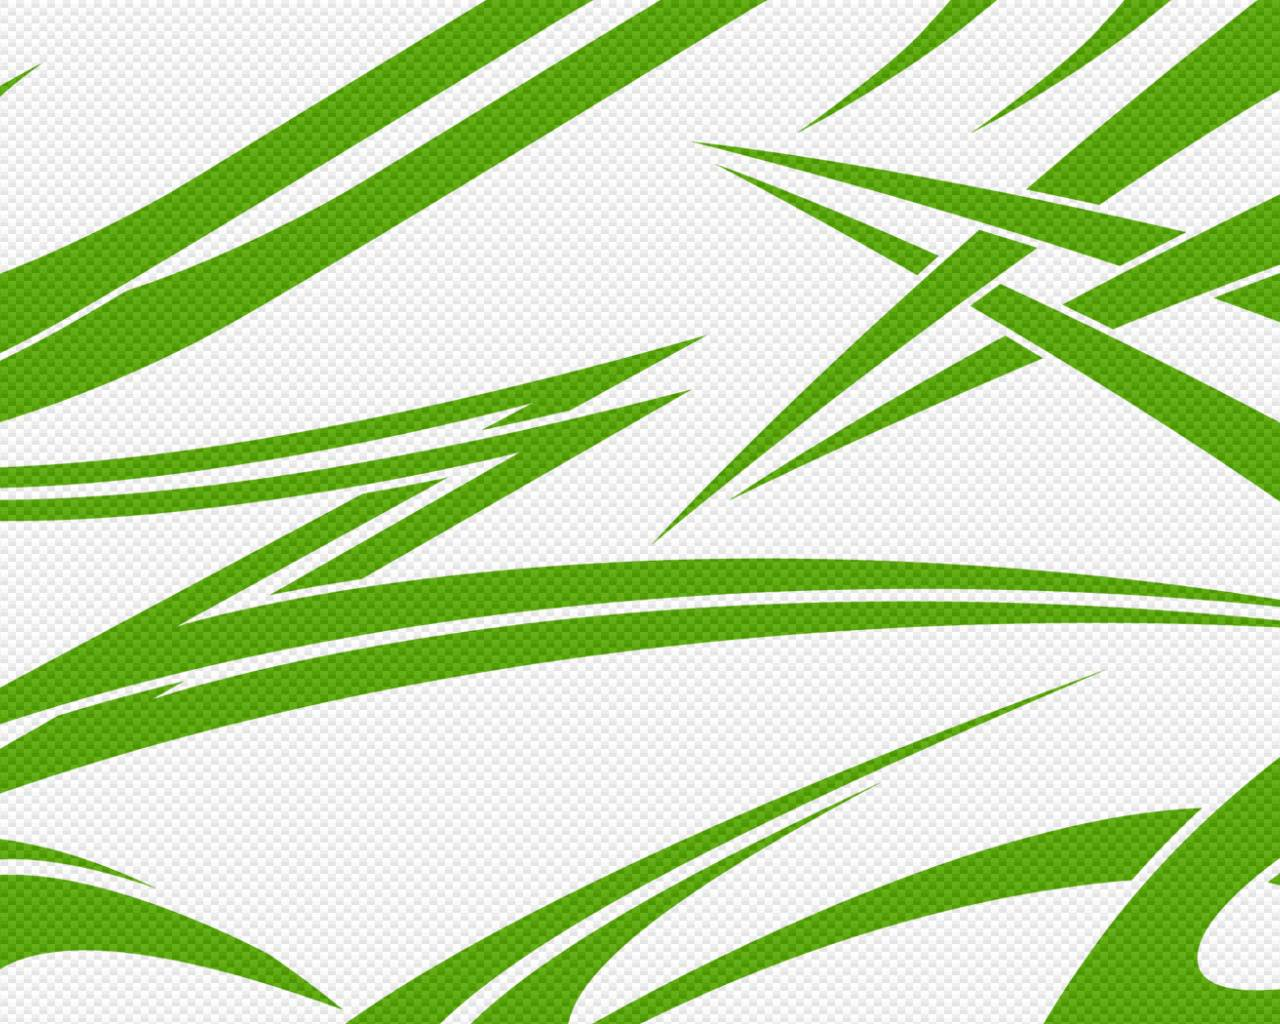 green and white backgrounds - photo #13